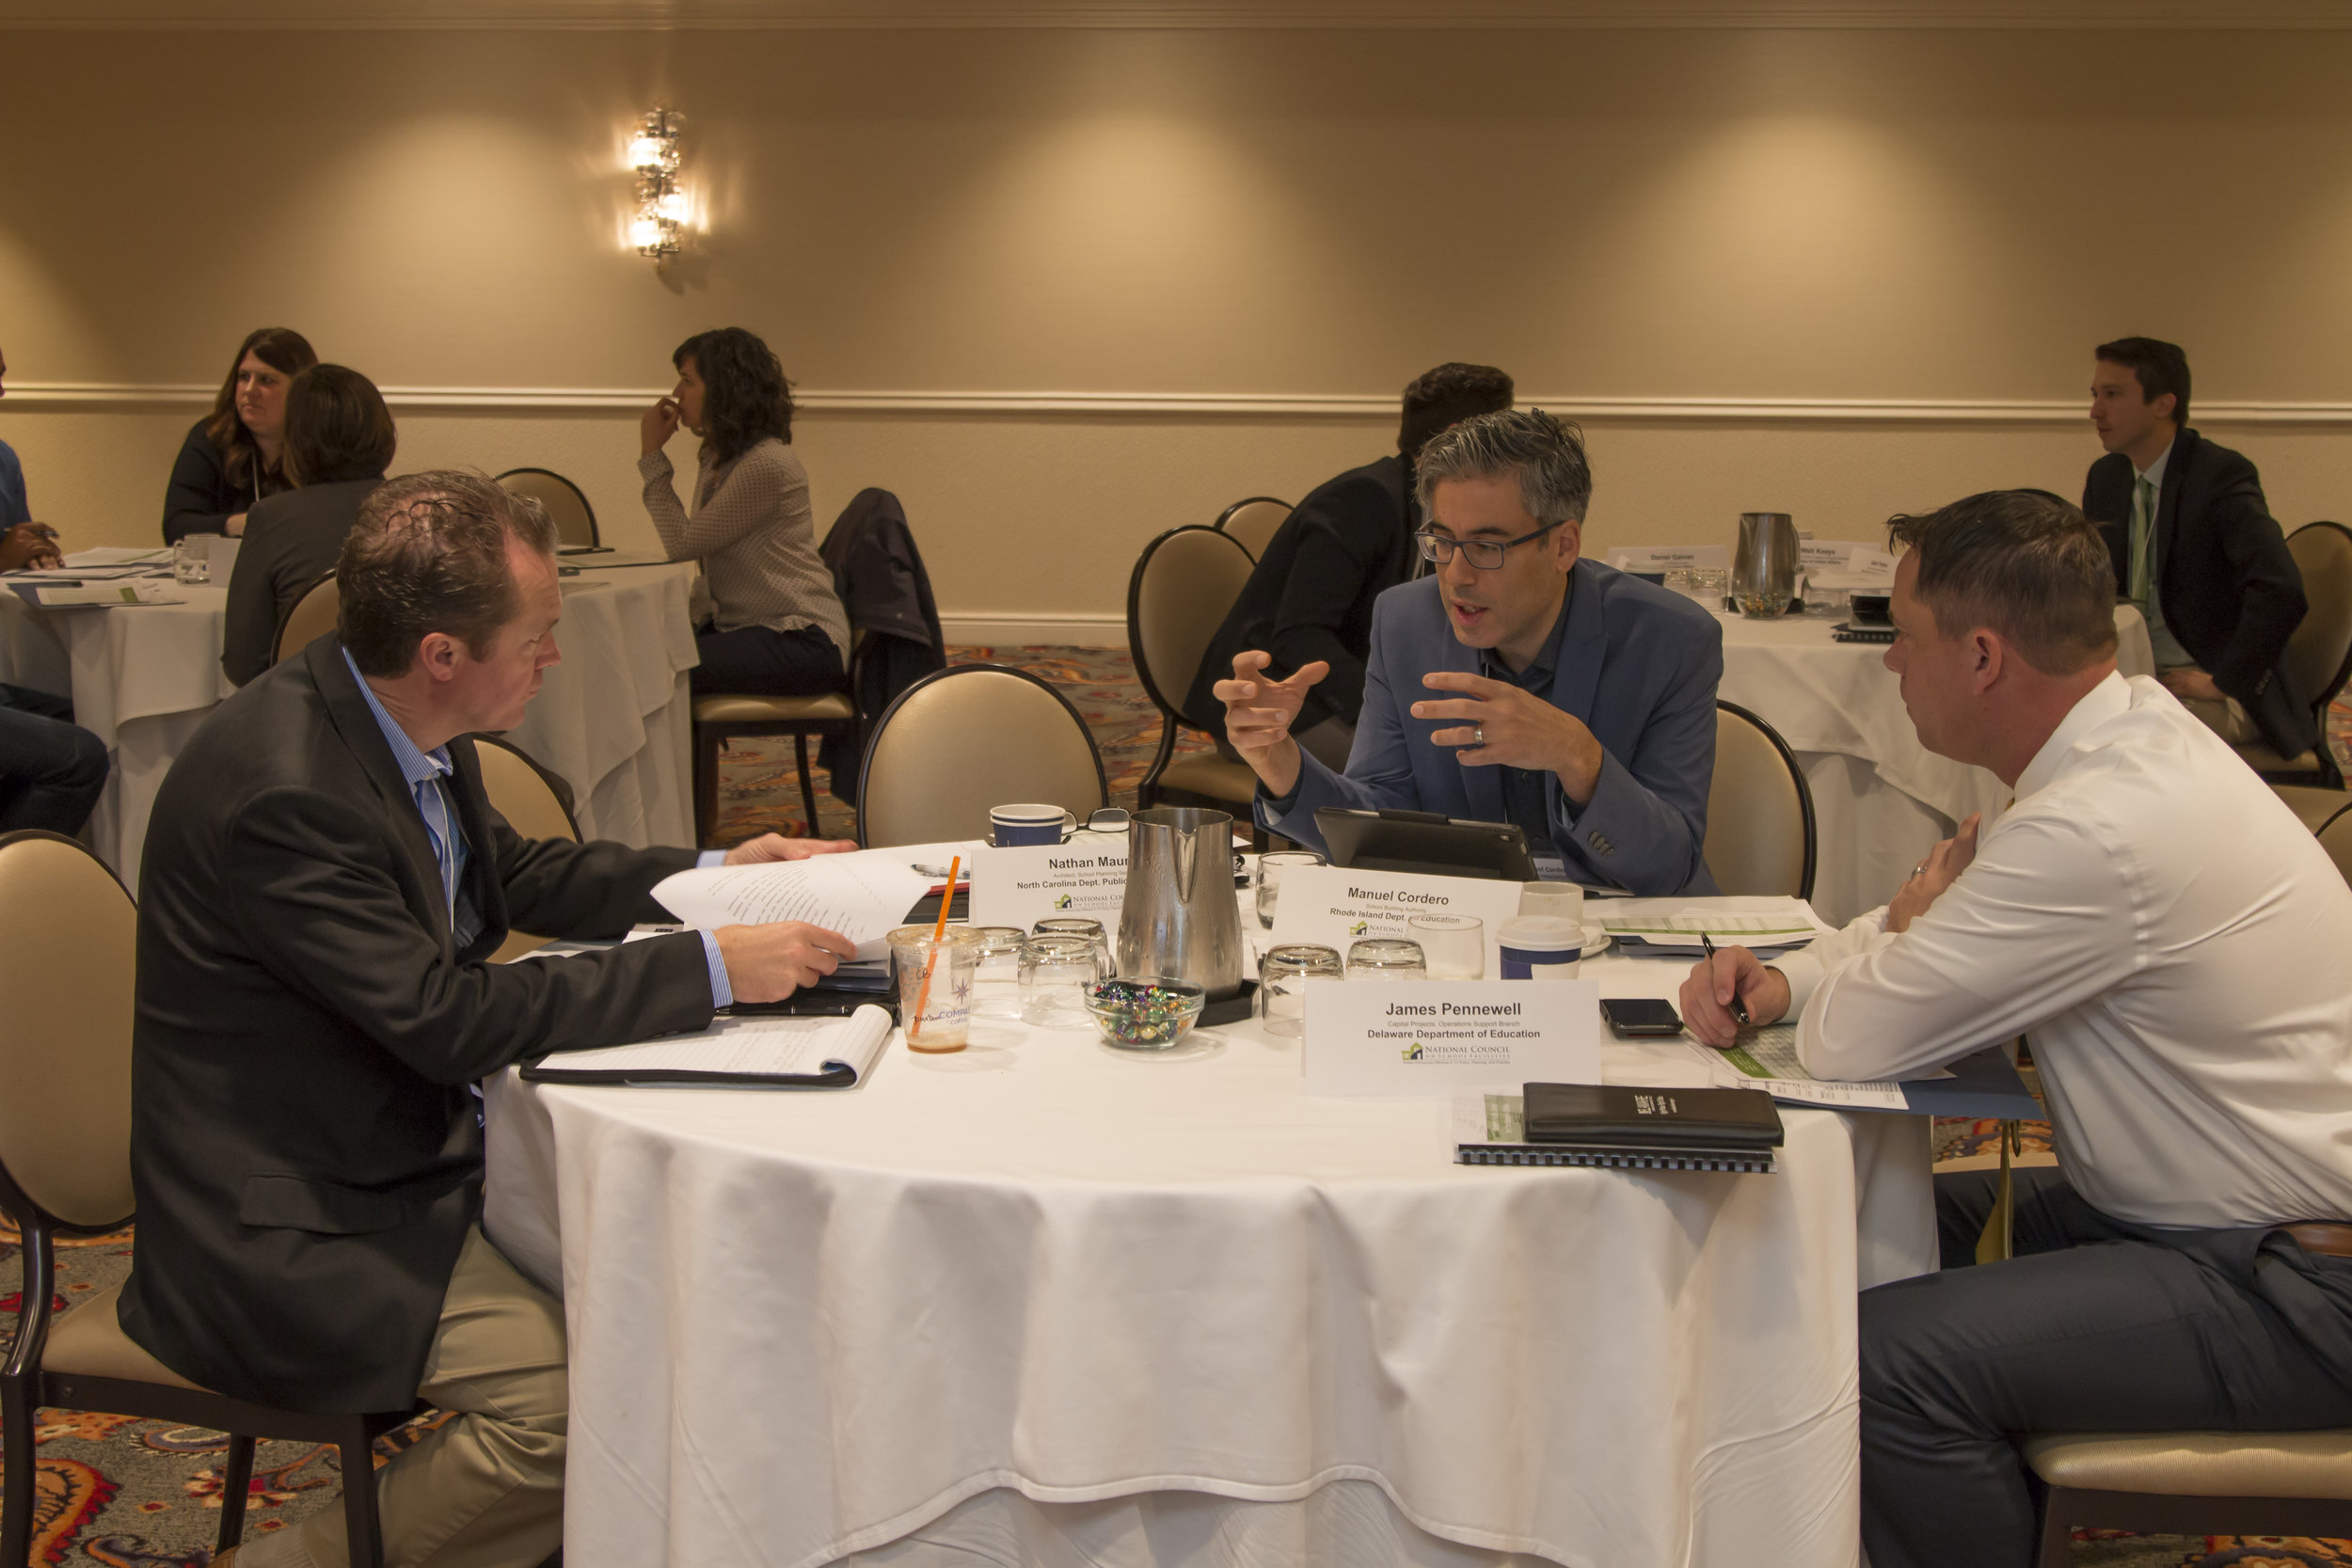 2018 NCSF Annual Meeting Table Discussion